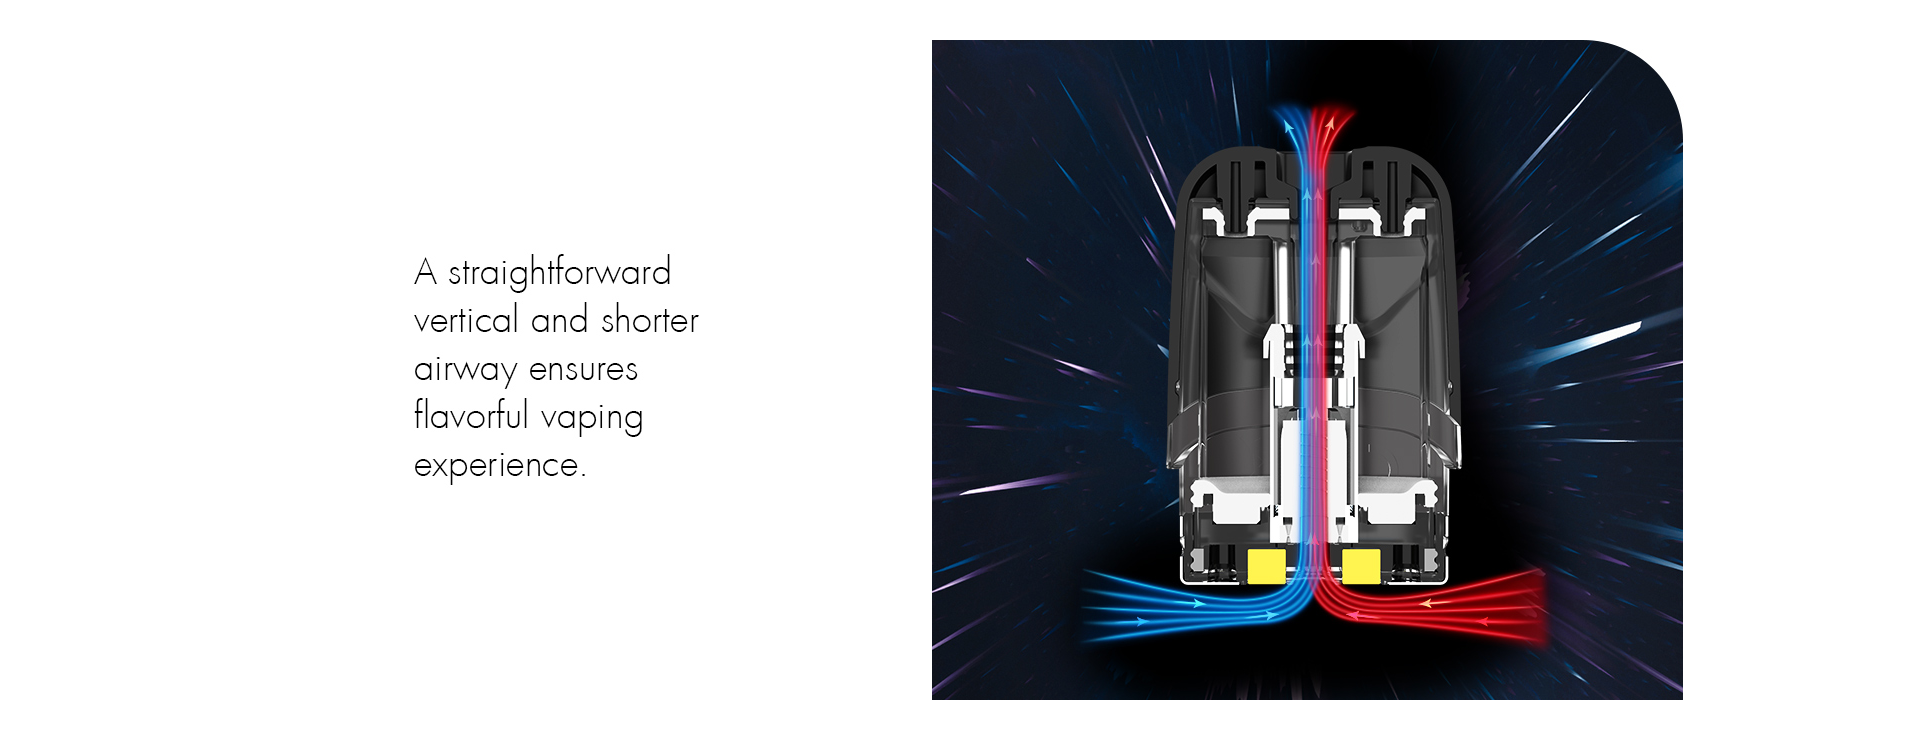 A depiction of a vape pod with arrows showing the airflow route.